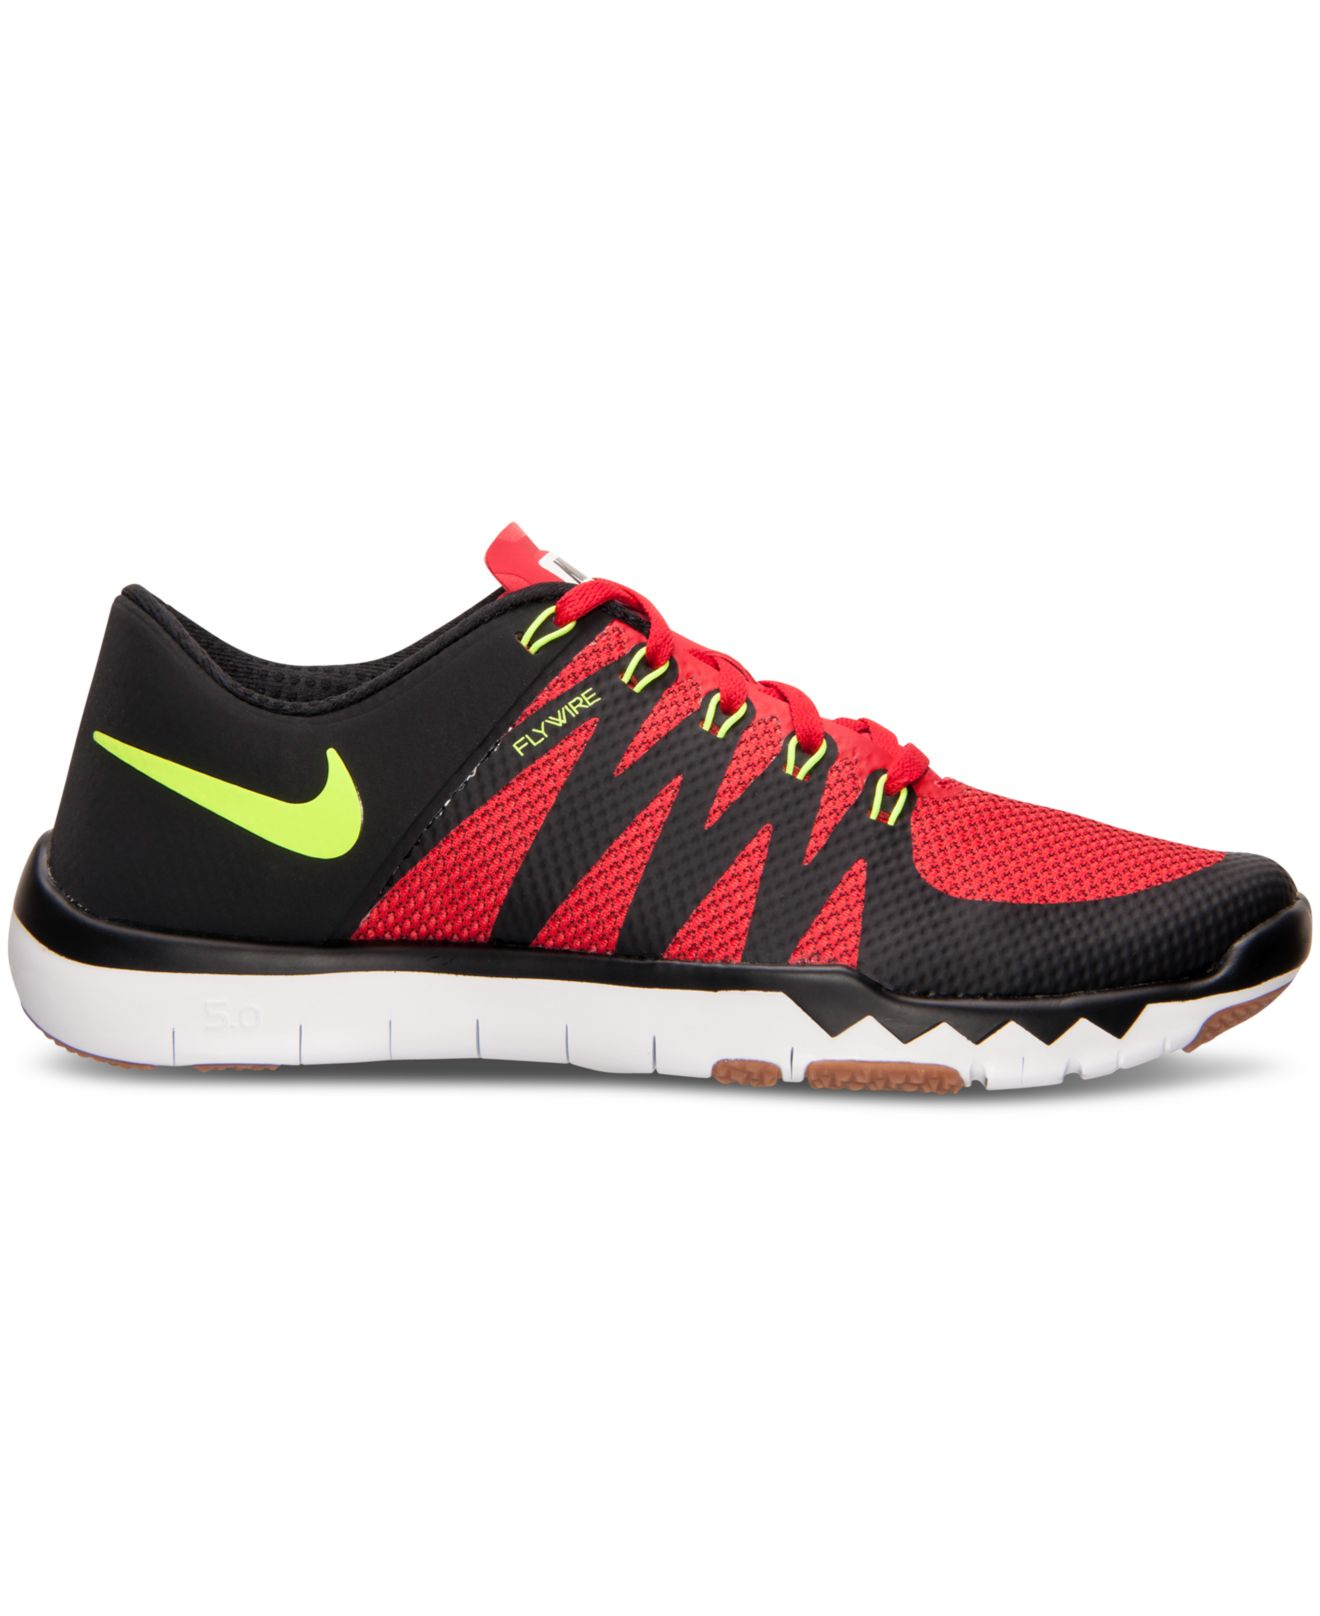 red nike 5.0 mens finish line